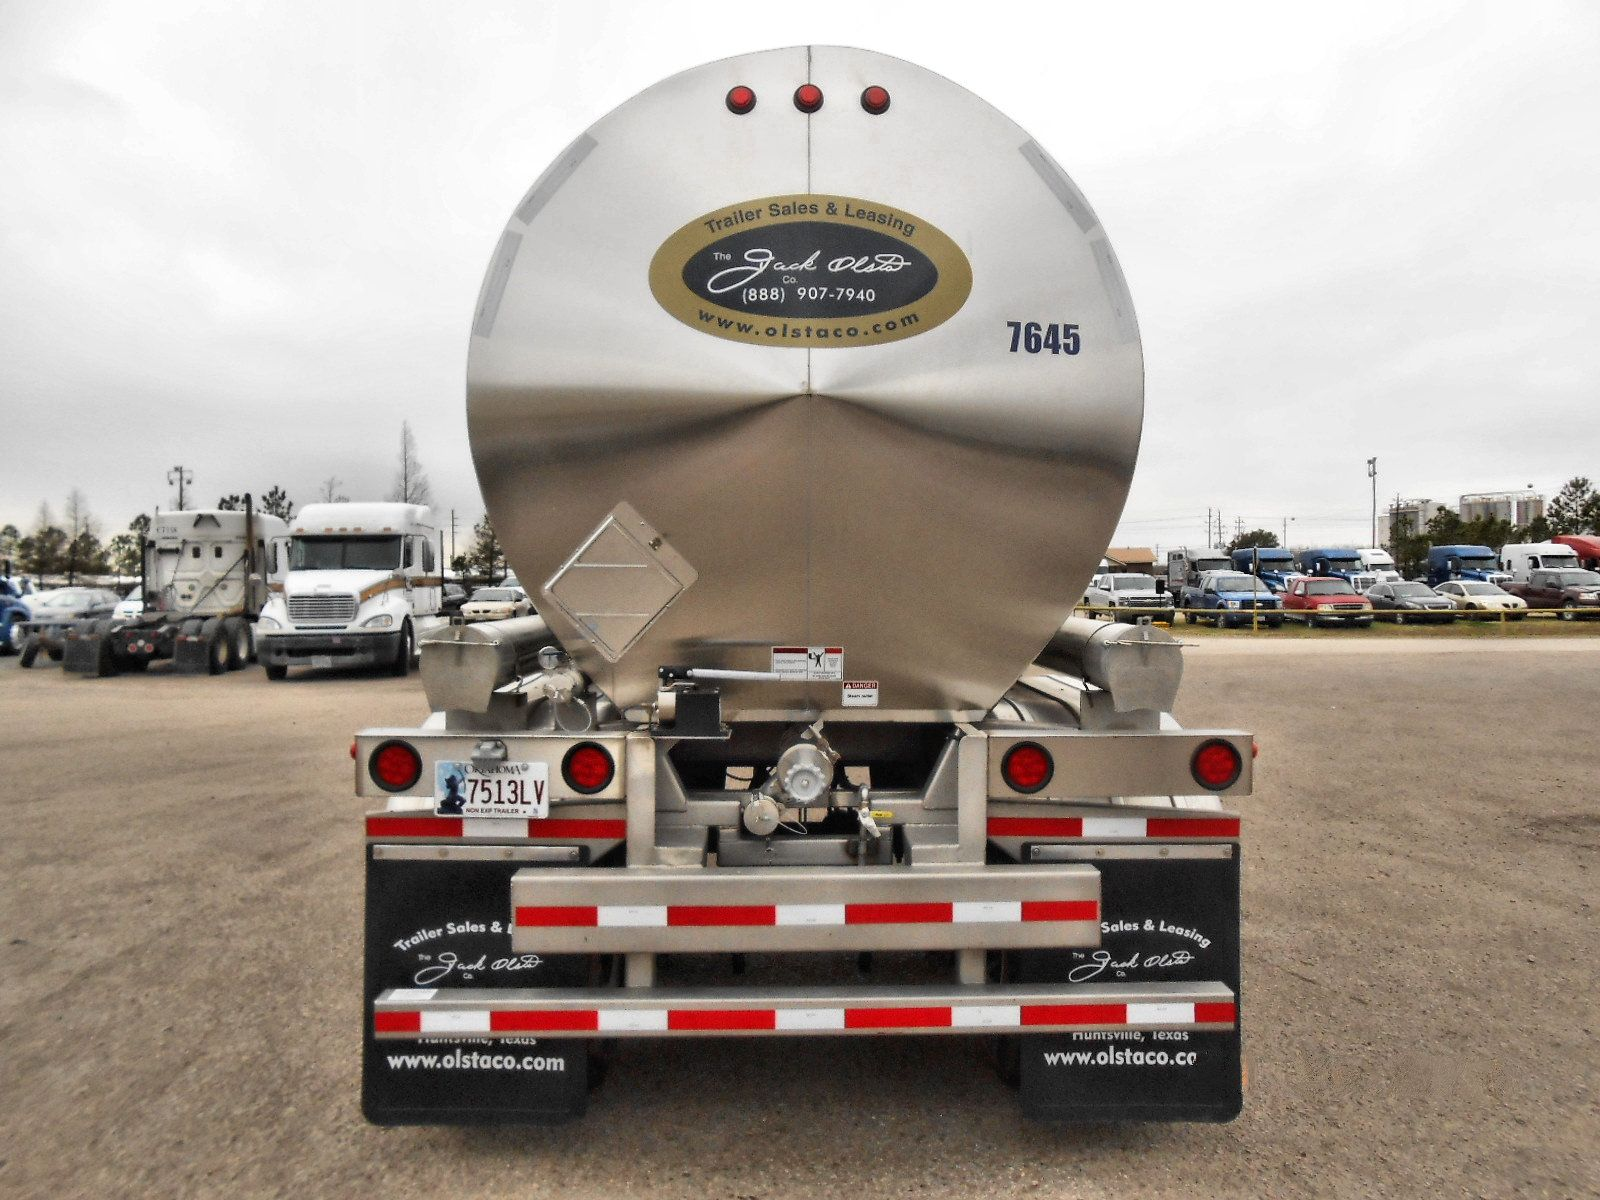 Tank Trailer Rentals for Lease | The Jack Olsta Co